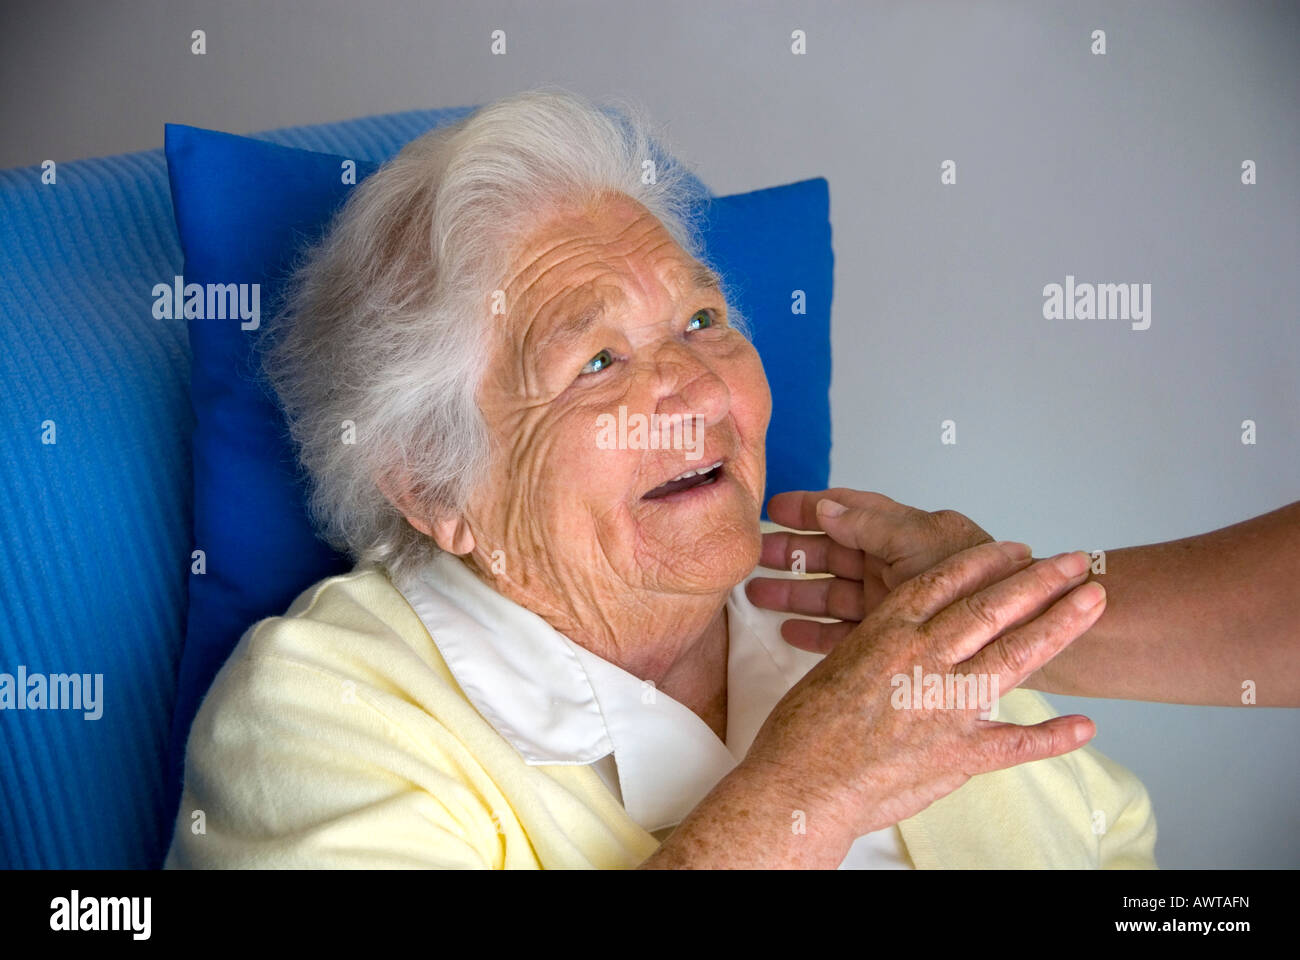 Contented smiling elderly woman looks up and touches comforting hand of carer Stock Photo